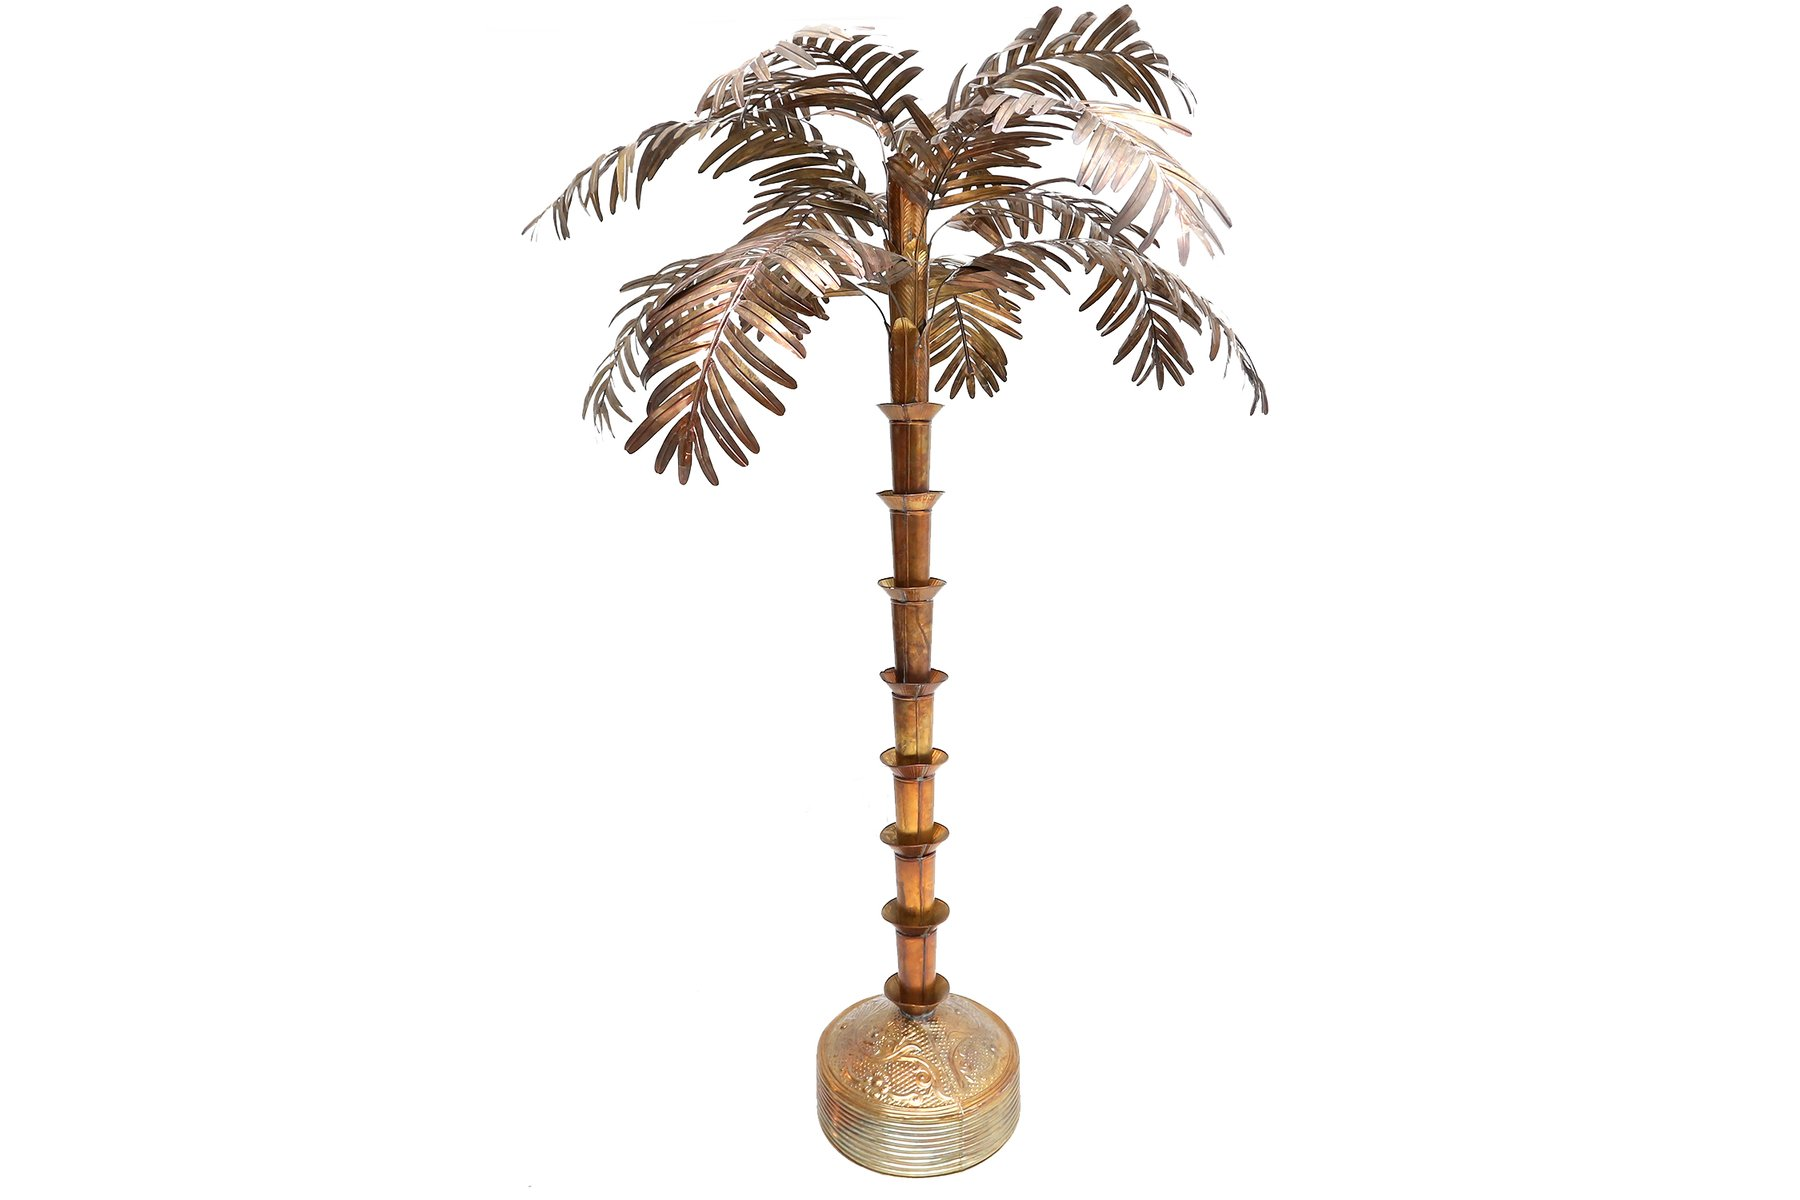 Brass Plated Palm Tree Floor Lamp 1980s For Sale At Pamono